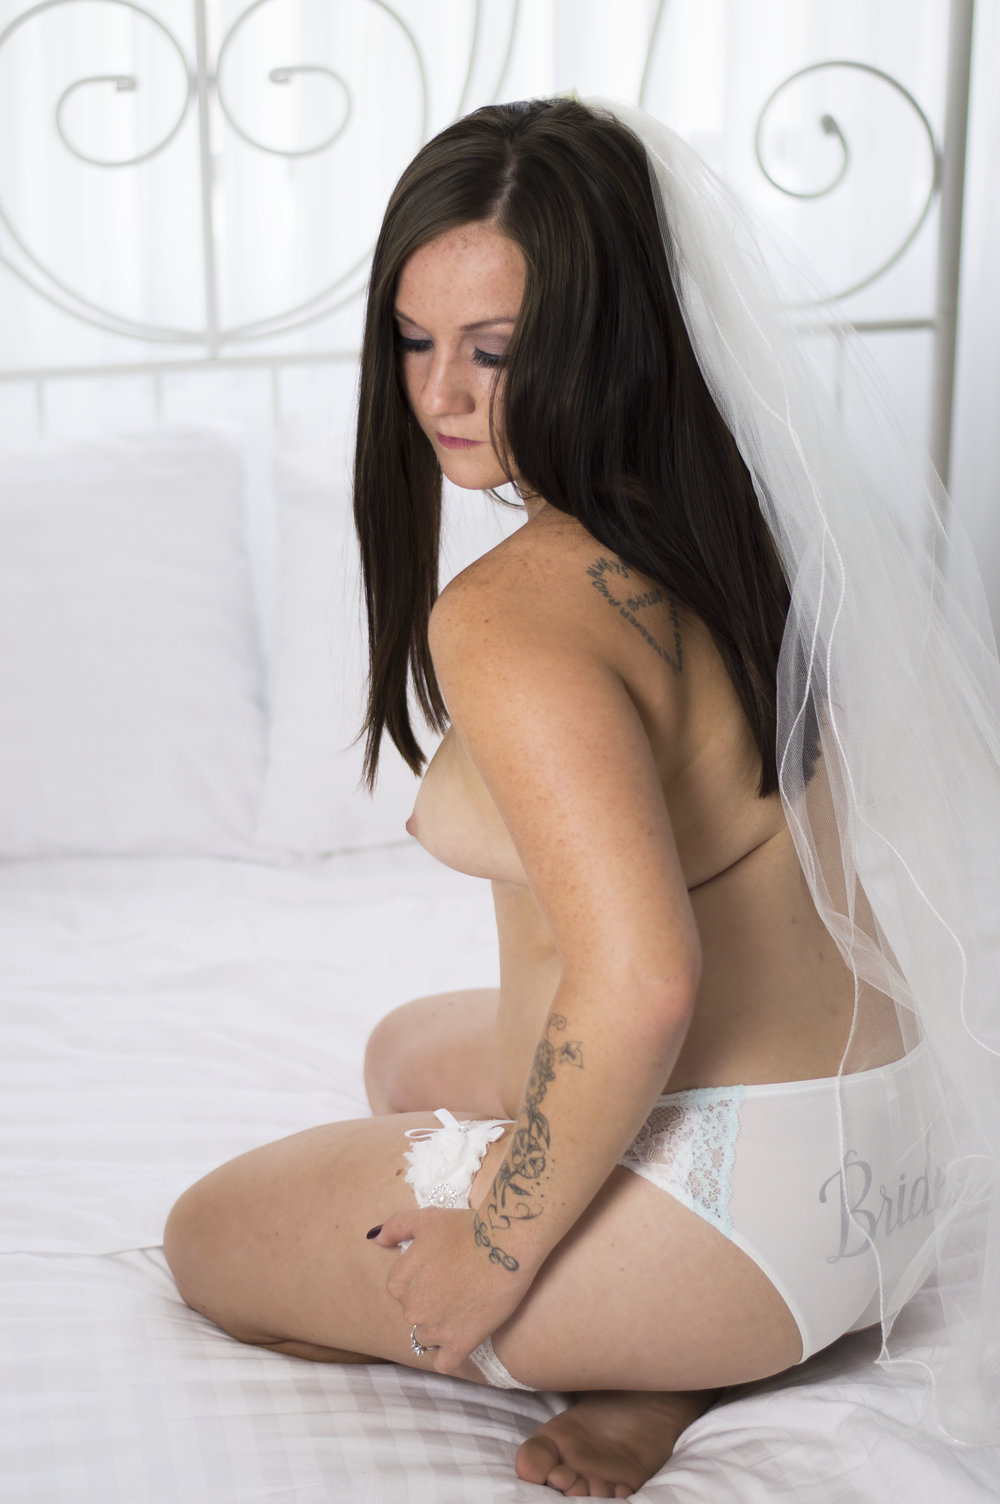 Bridal photography boudoir photographer in Phoenix, Scottsdale, AZ The Bella Jade Collection private photo shoots